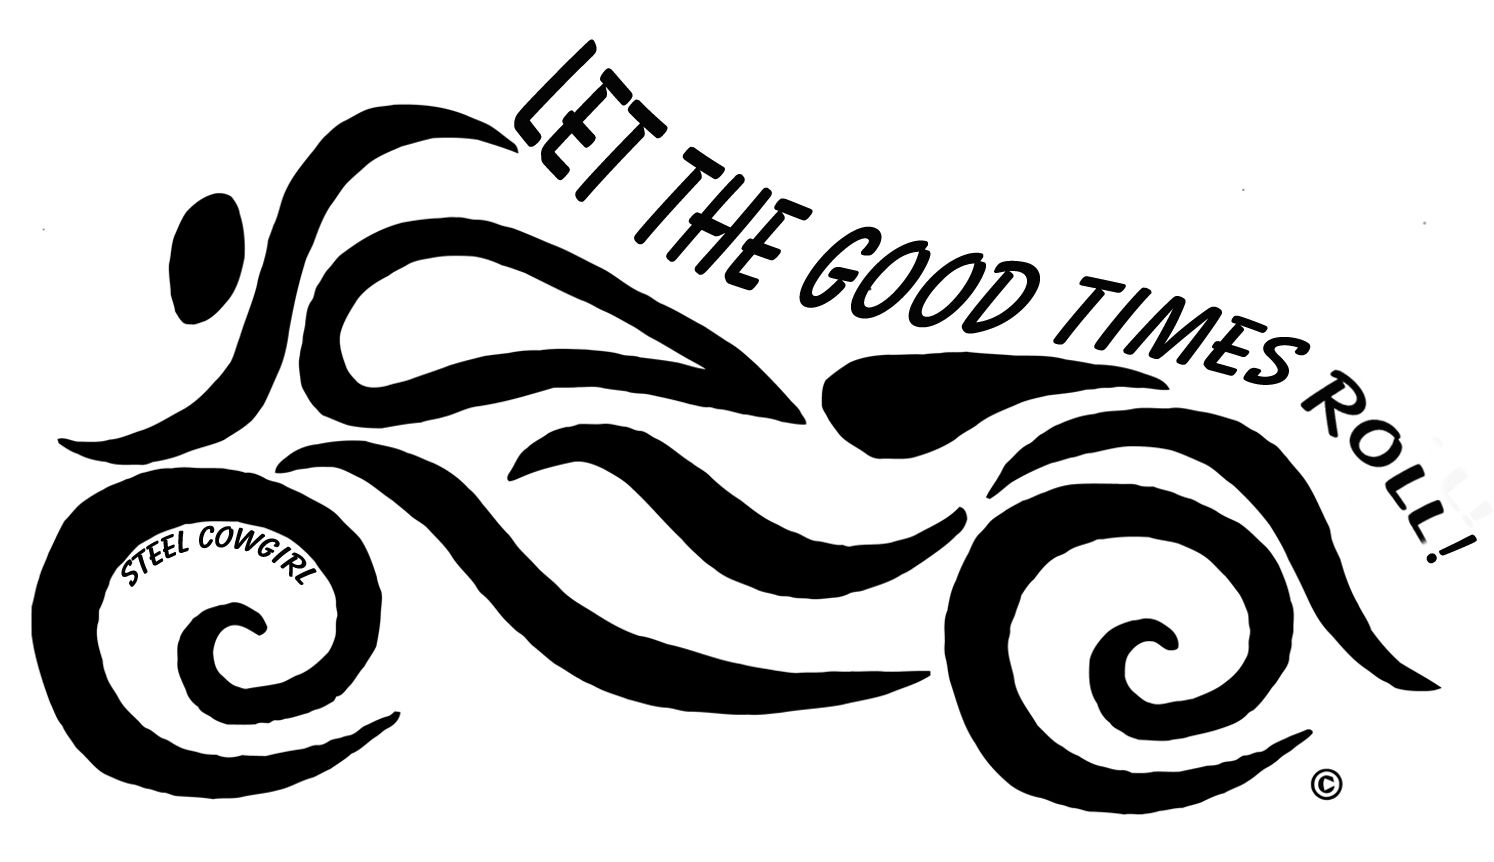 Let The Good Times Roll Motorcycle